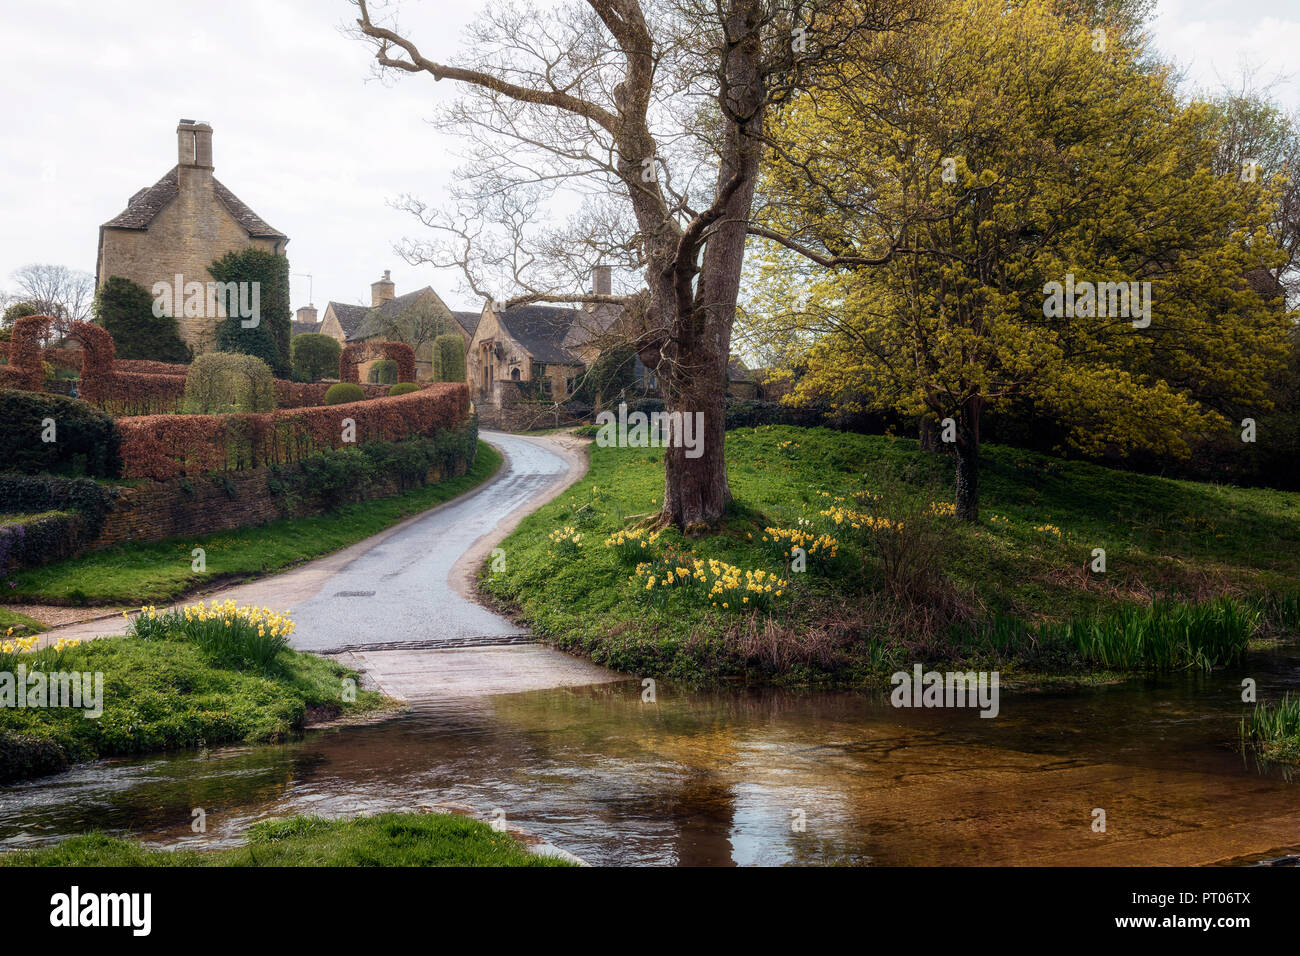 Upper Slaughter, Cotswold, Gloucestershire, England, UK - Stock Image